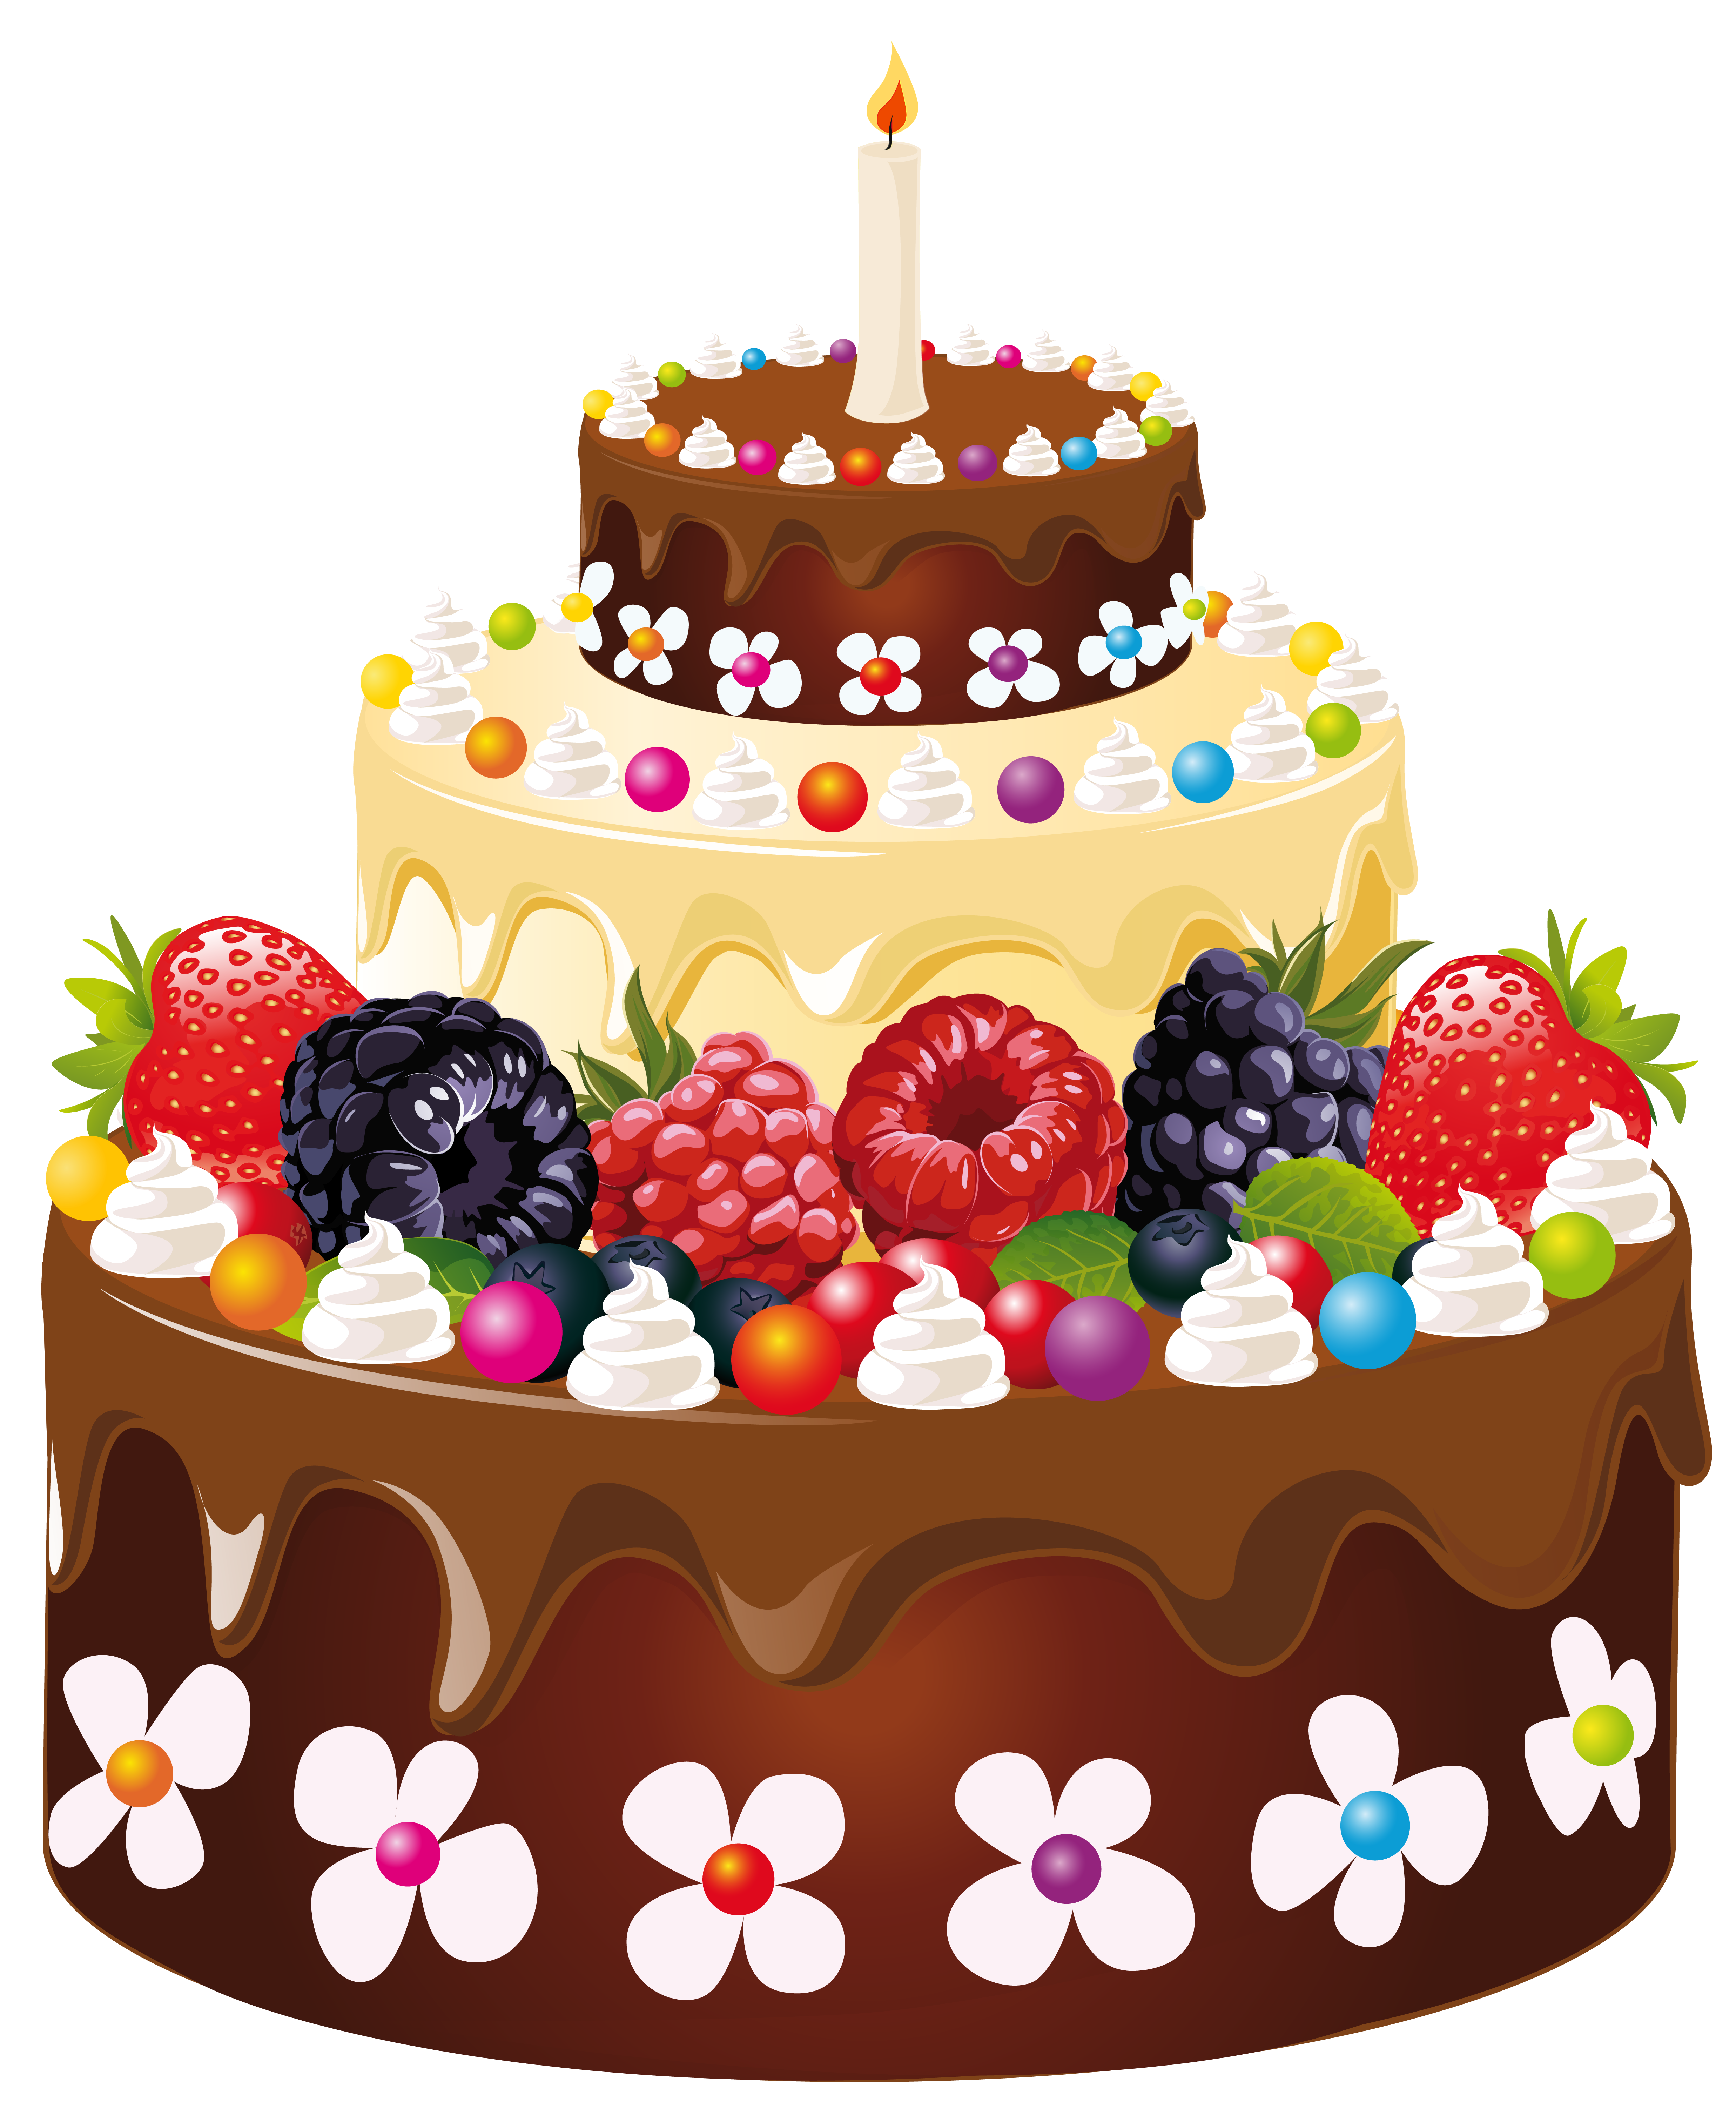 Happy birthday cake with candles clipart svg black and white Birthday Cake with Candle PNG Clipart Image | Gallery Yopriceville ... svg black and white